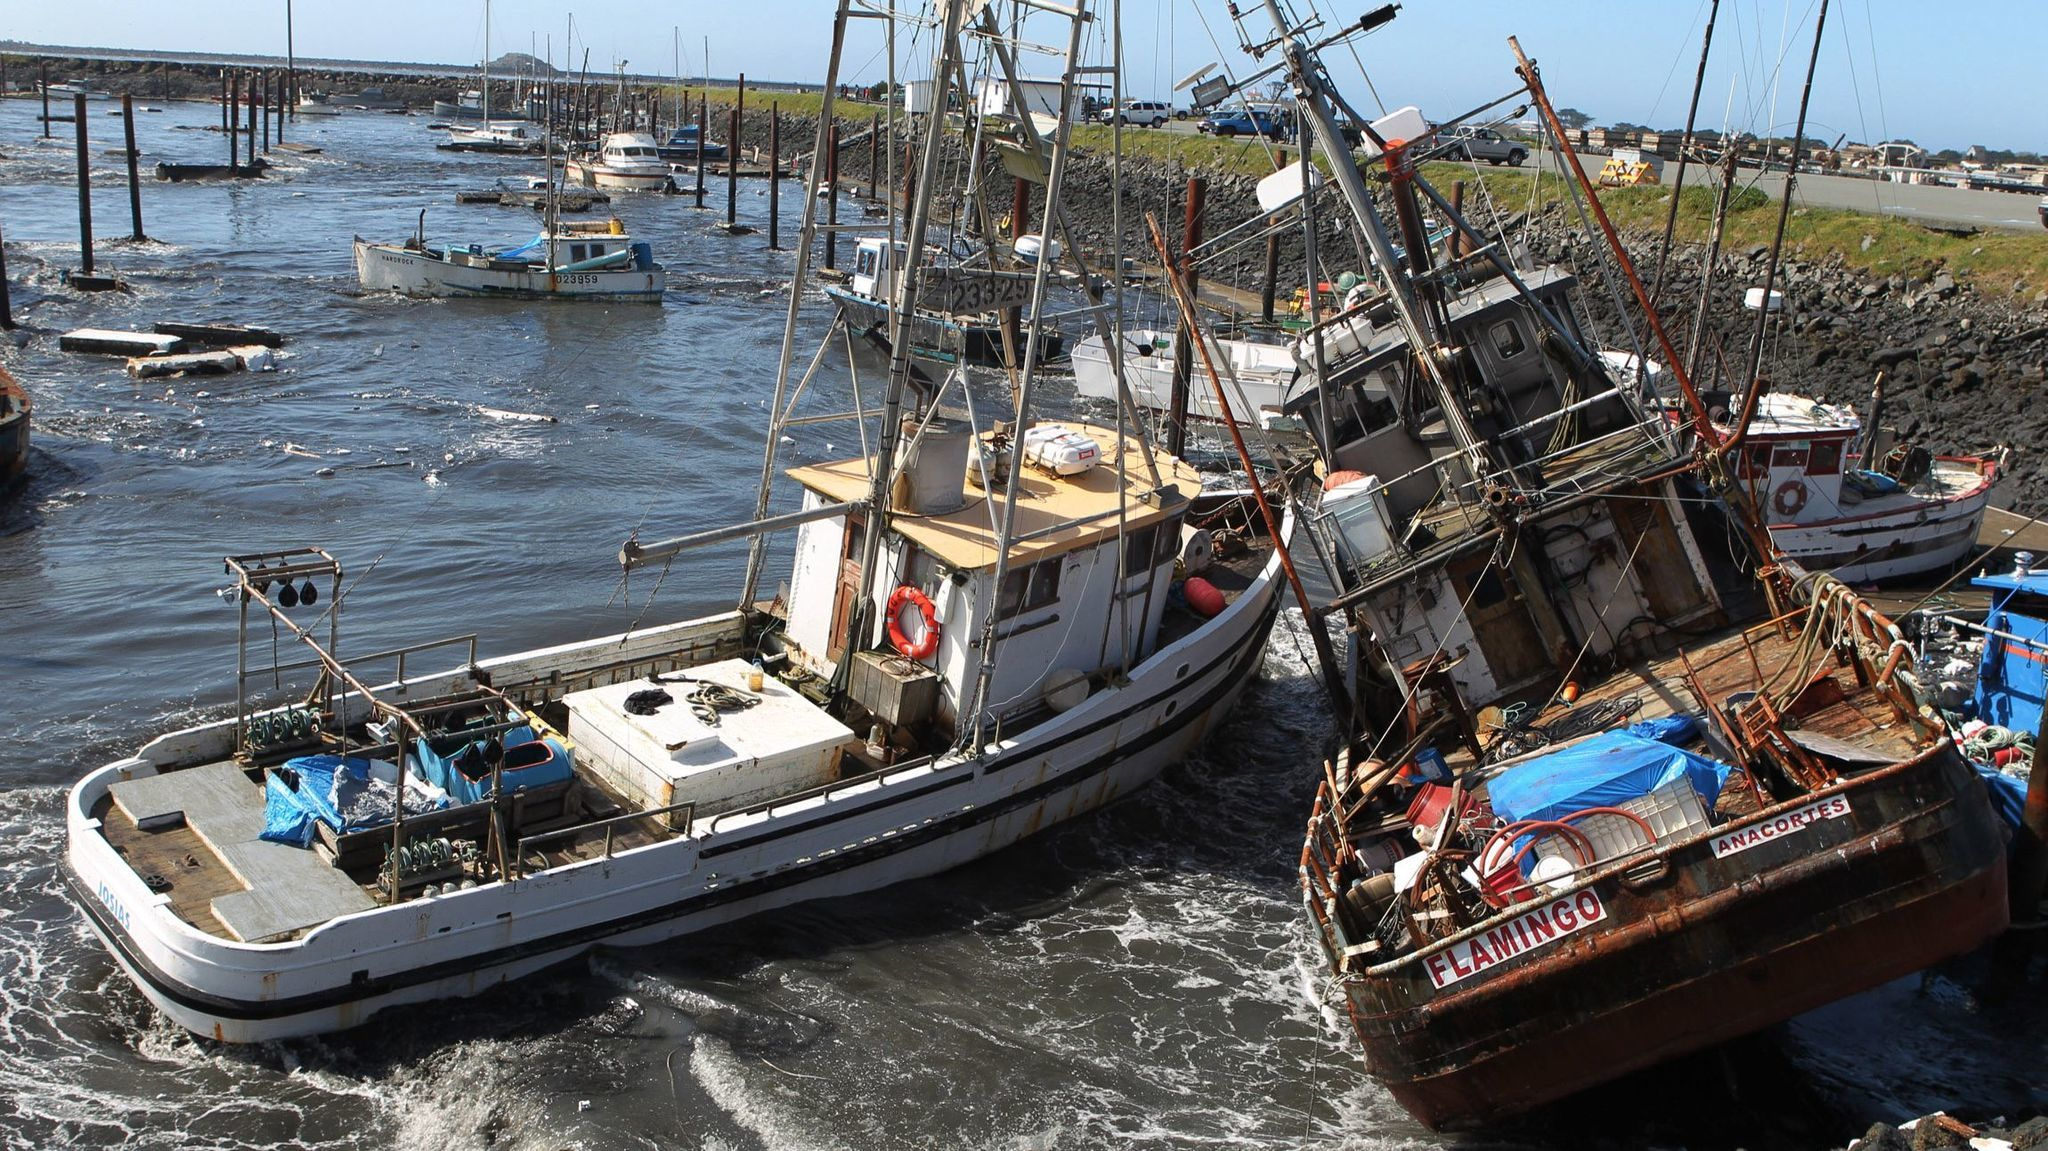 In this March 11, 2011 file photo, boats collide with one another after a tsunami swept through a boat basin in Crescent City, Calif.